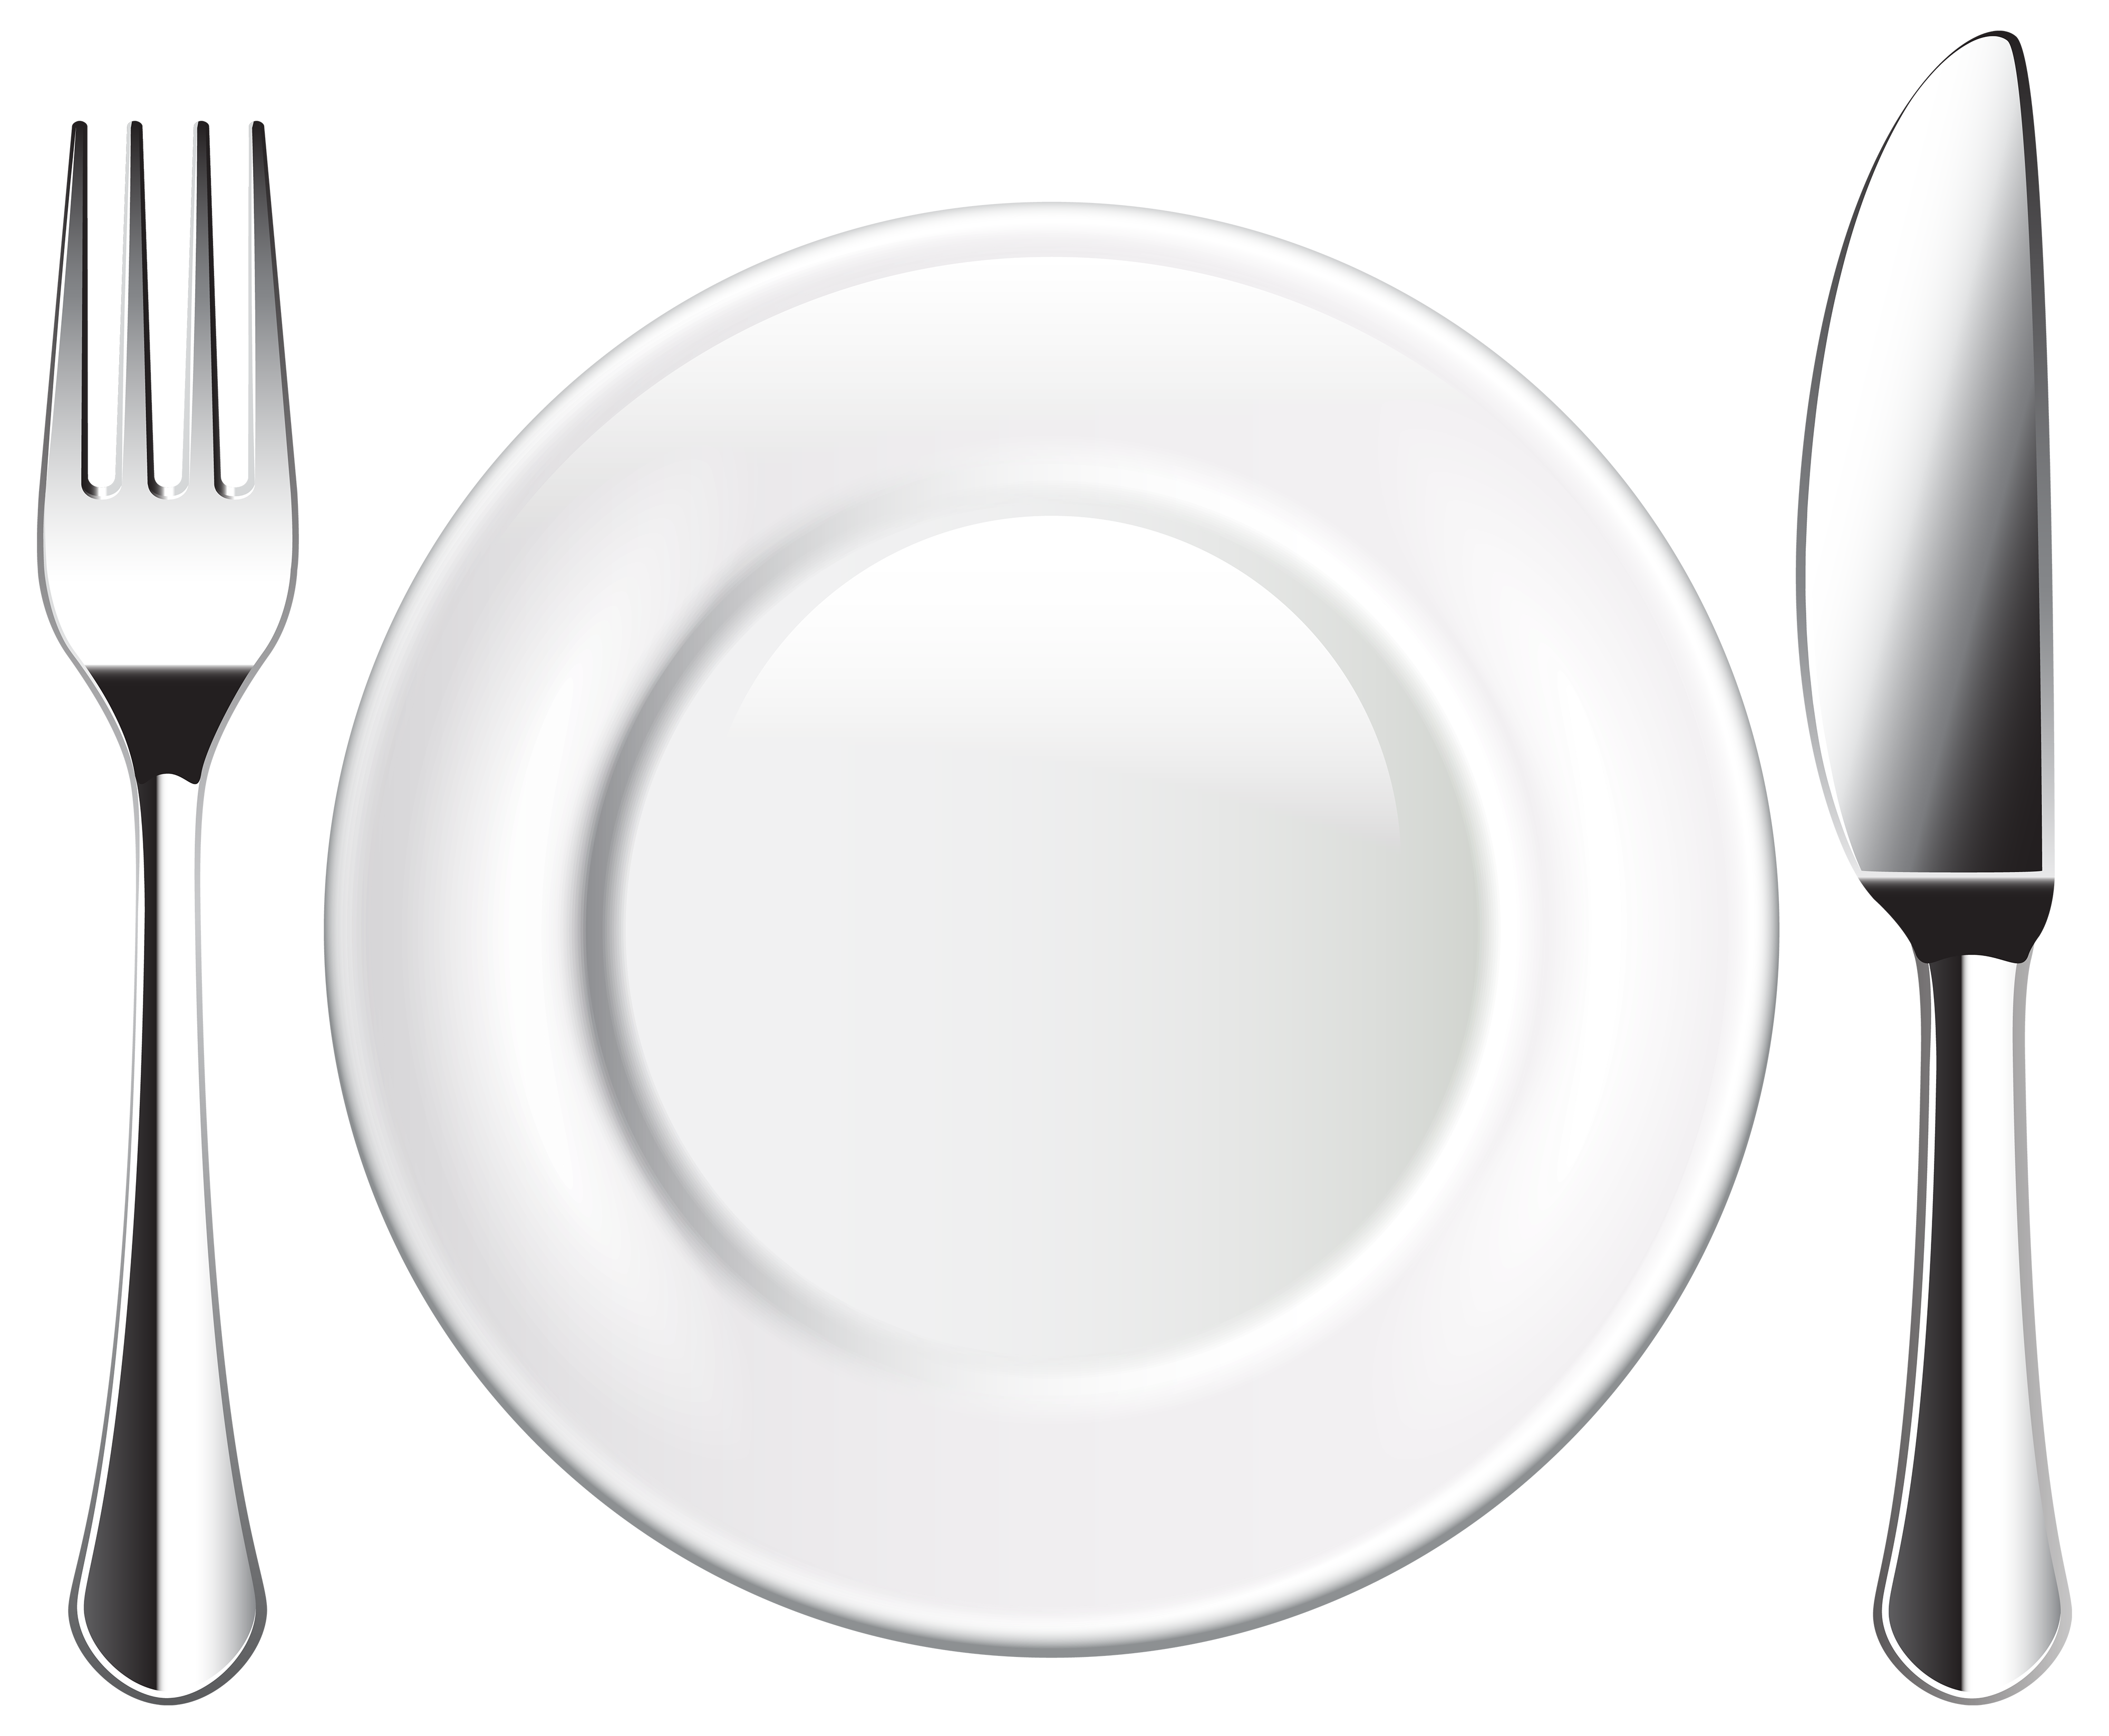 Clipart plate knife fork image free library Plate Knife and Fork PNG Clipart - Best WEB Clipart image free library